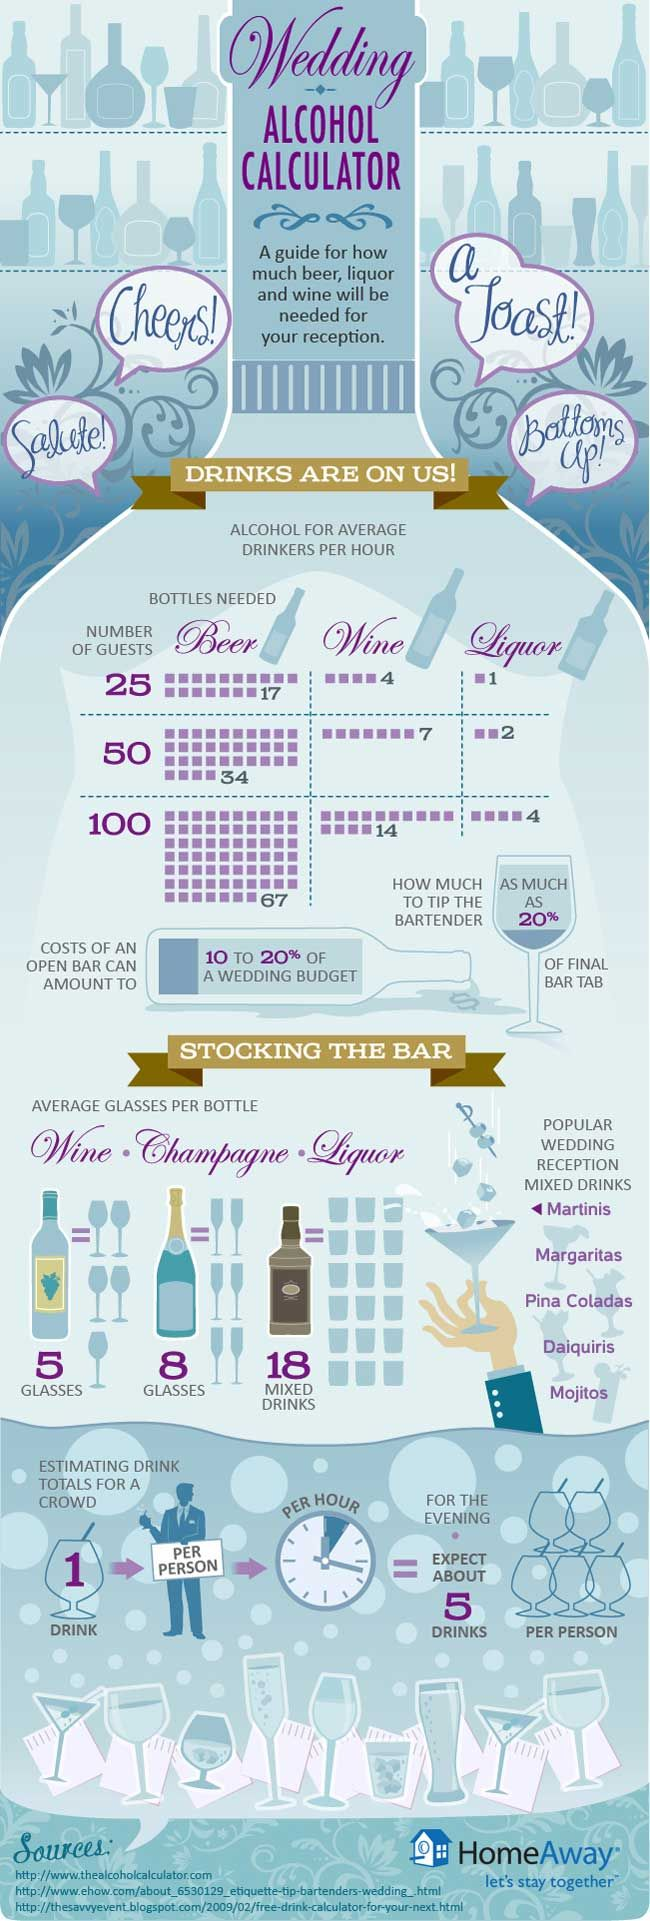 Calculation of alcohol for the wedding. Alcohol calculation formula 5